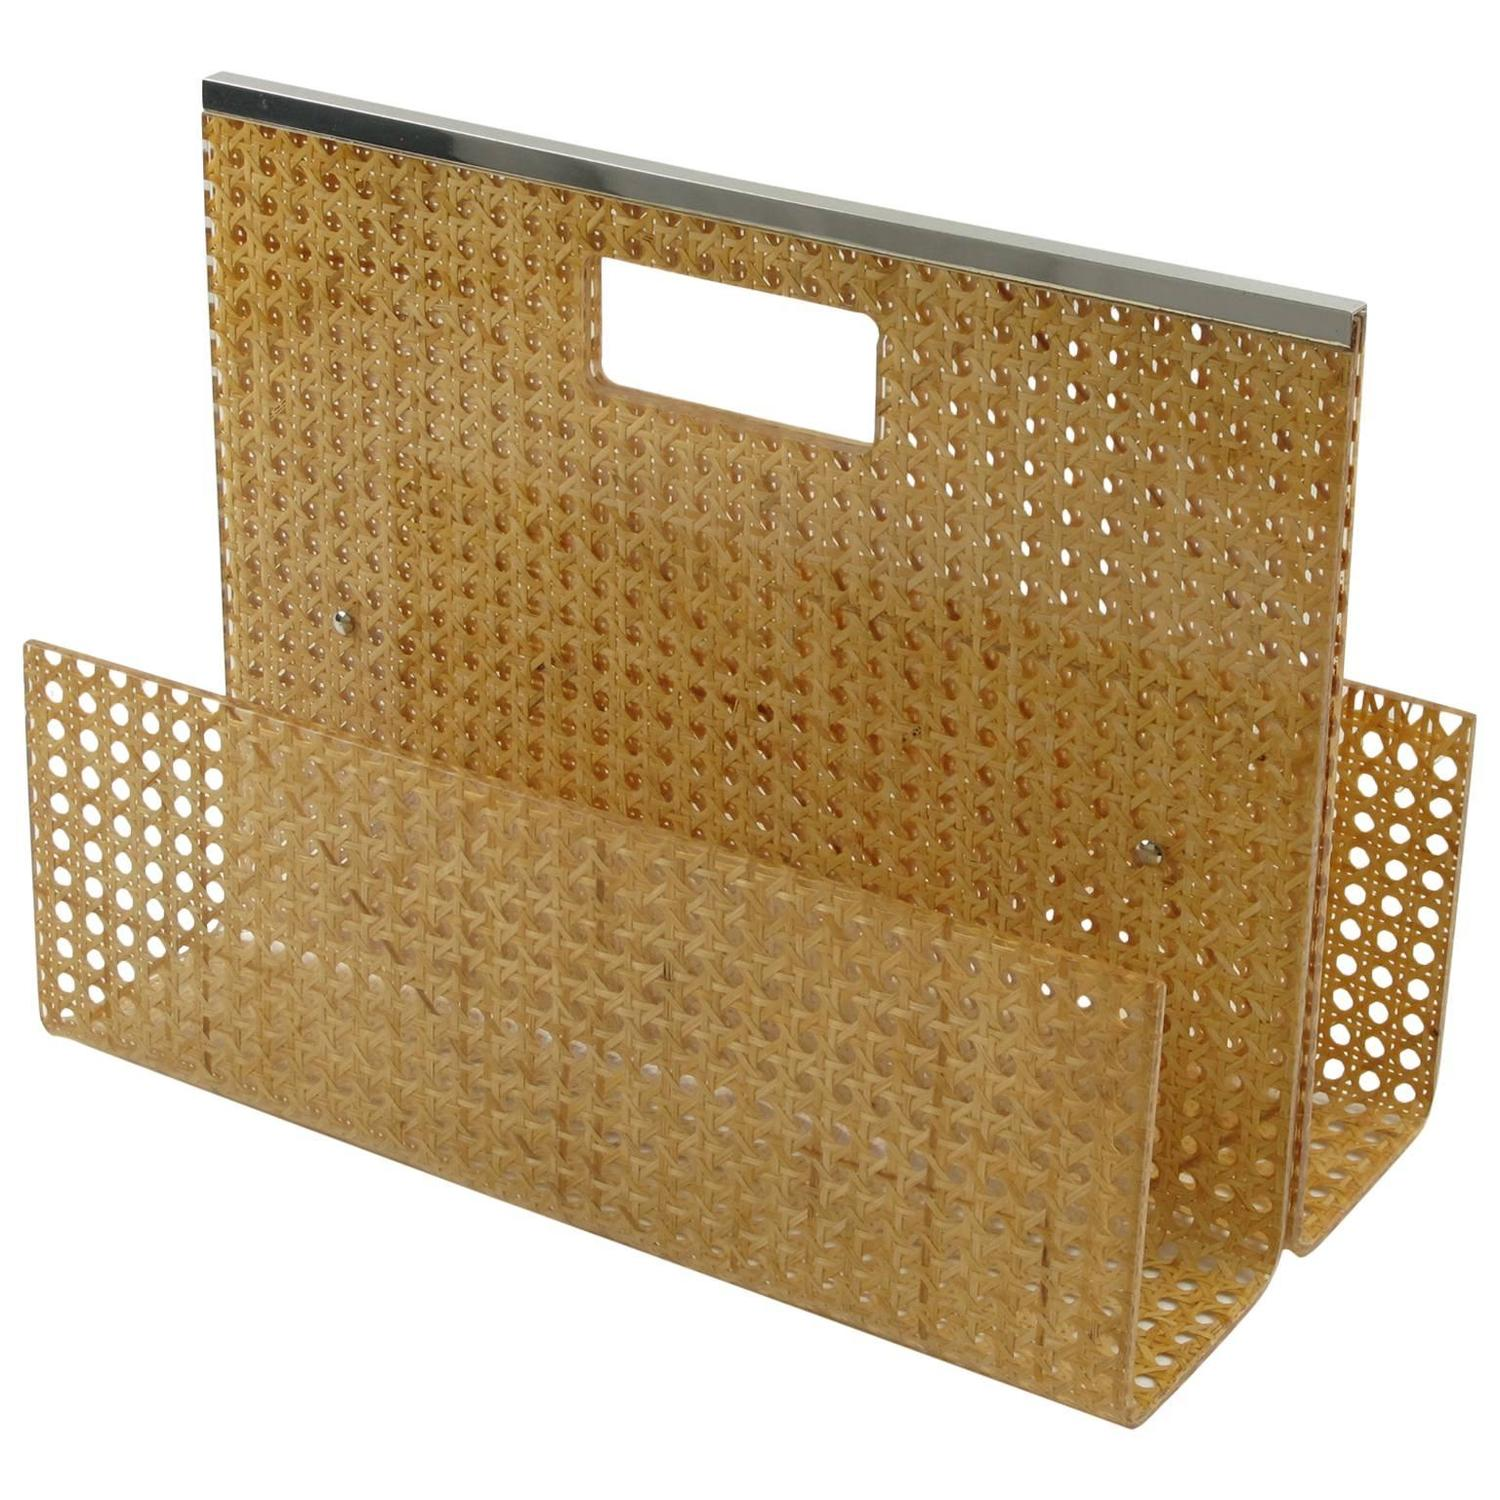 1970s Lucite And Rattan Magazine Rack Holder By Christian Dior Home  Collection For Sale At 1stdibs